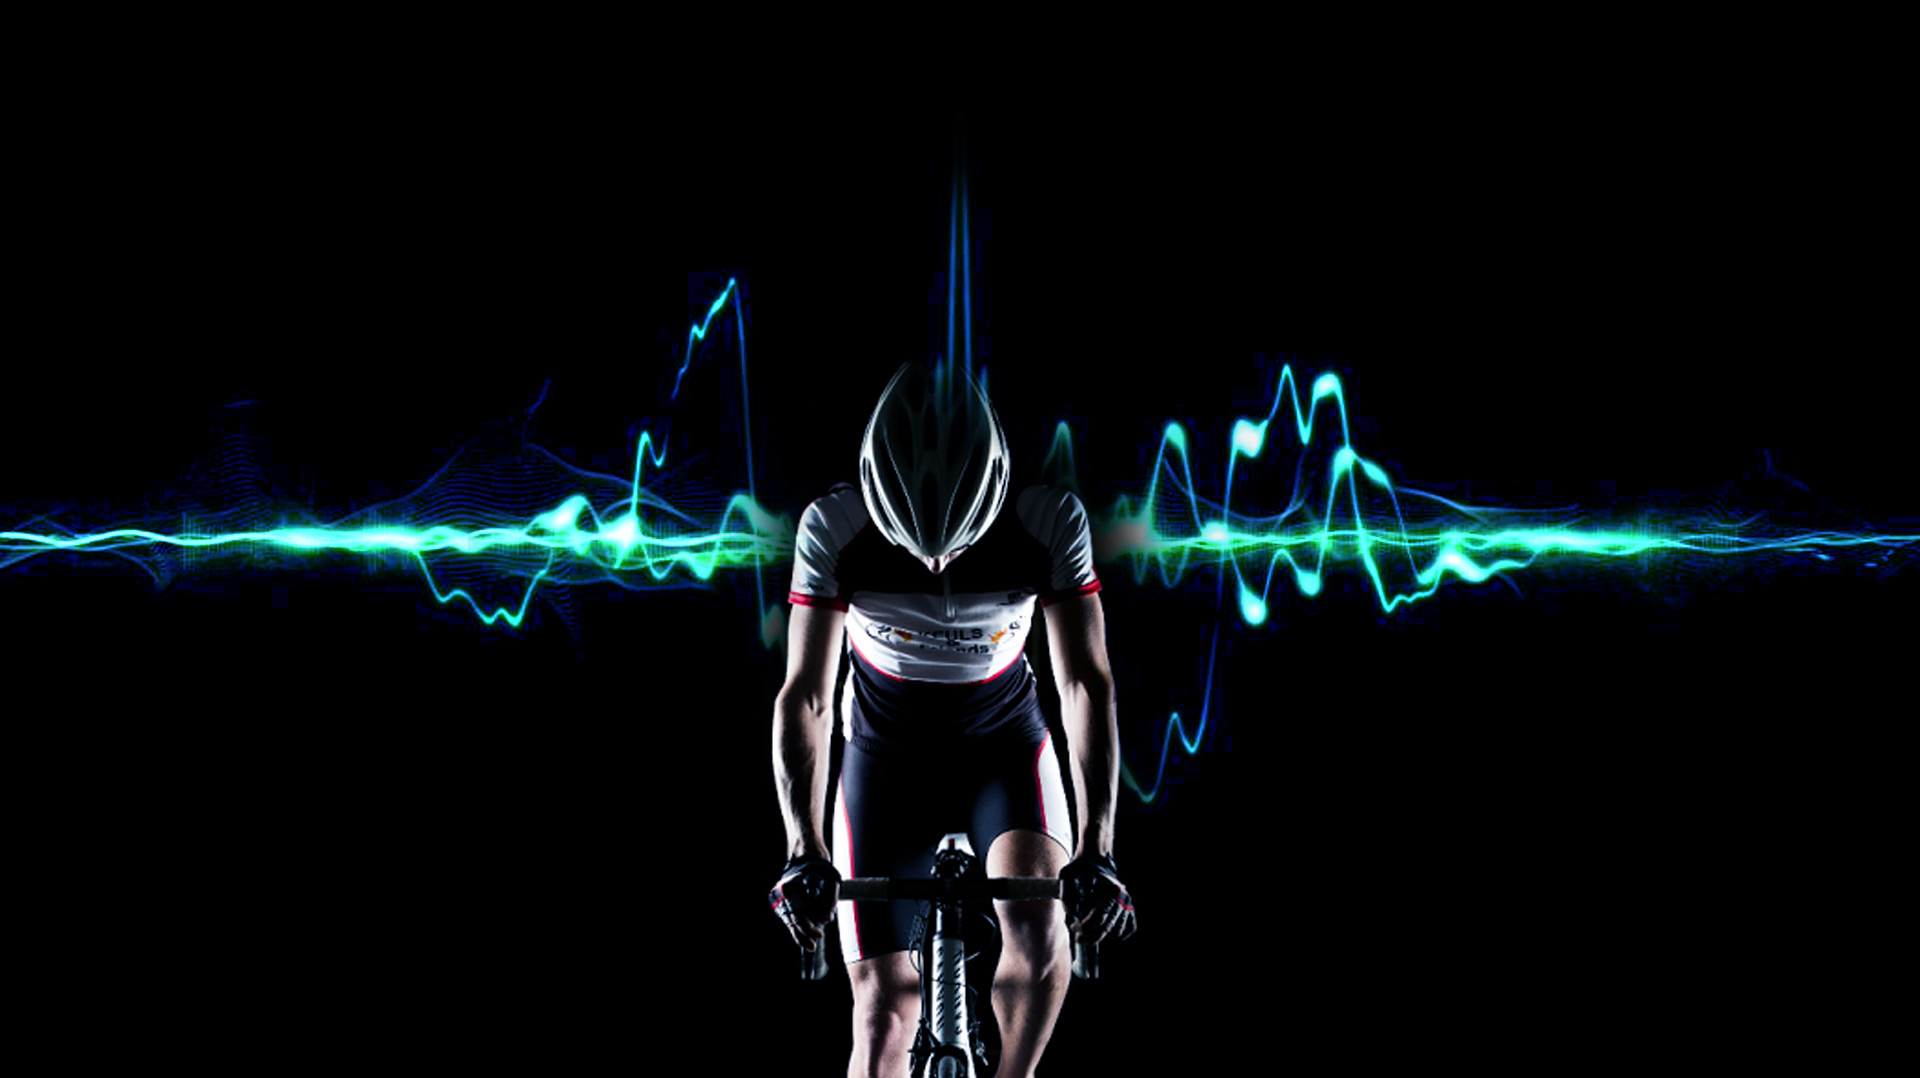 ff-exercise-bikes-inner-page